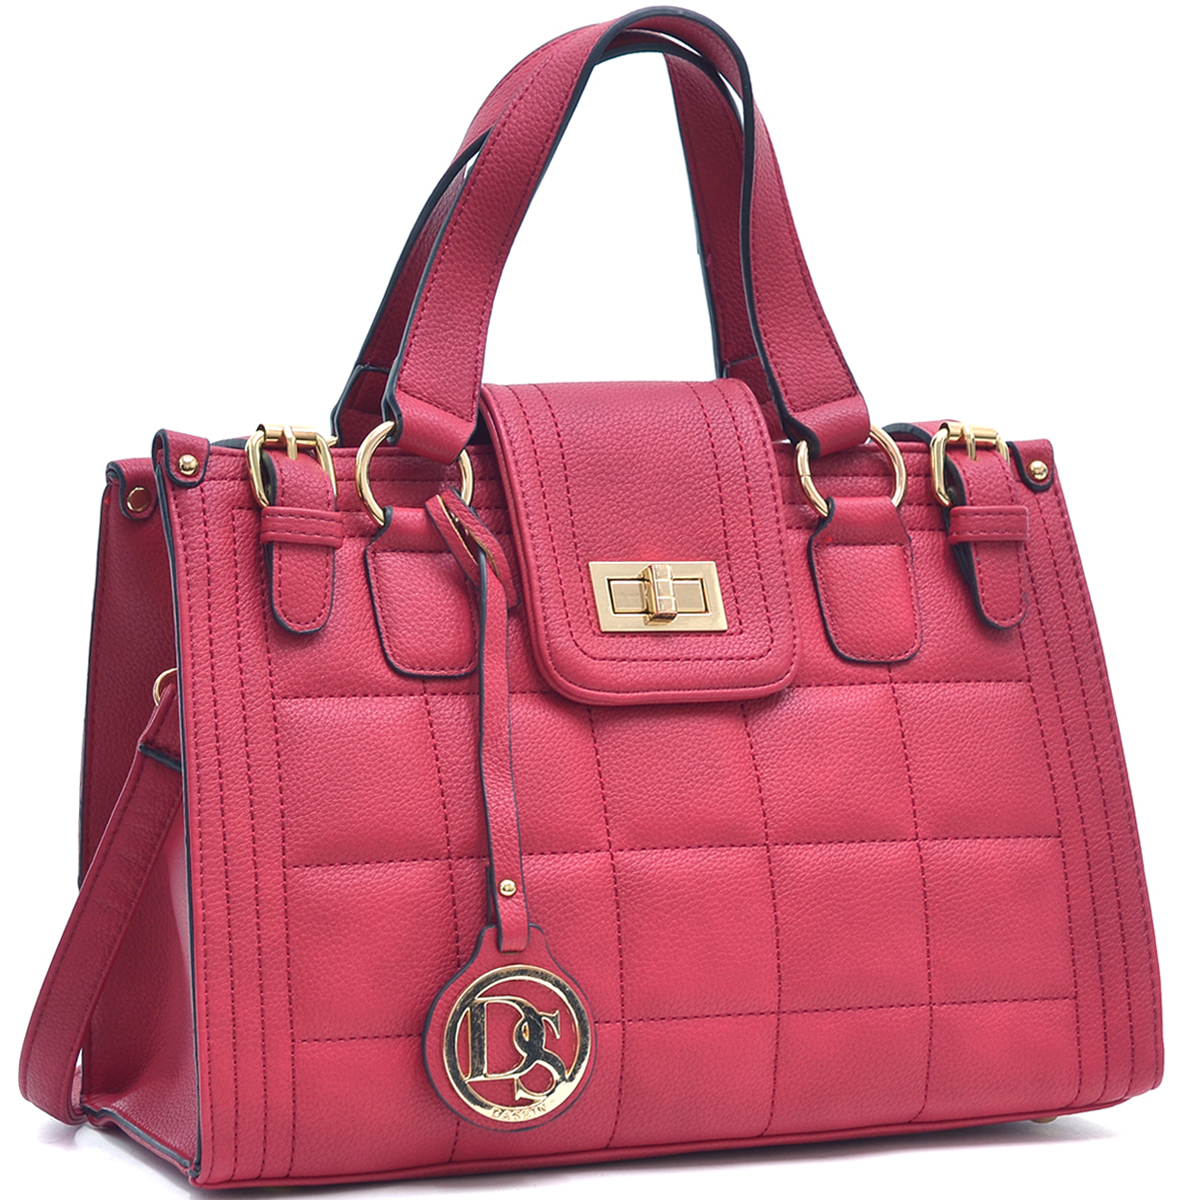 Quilted Satchel with Buckled Details